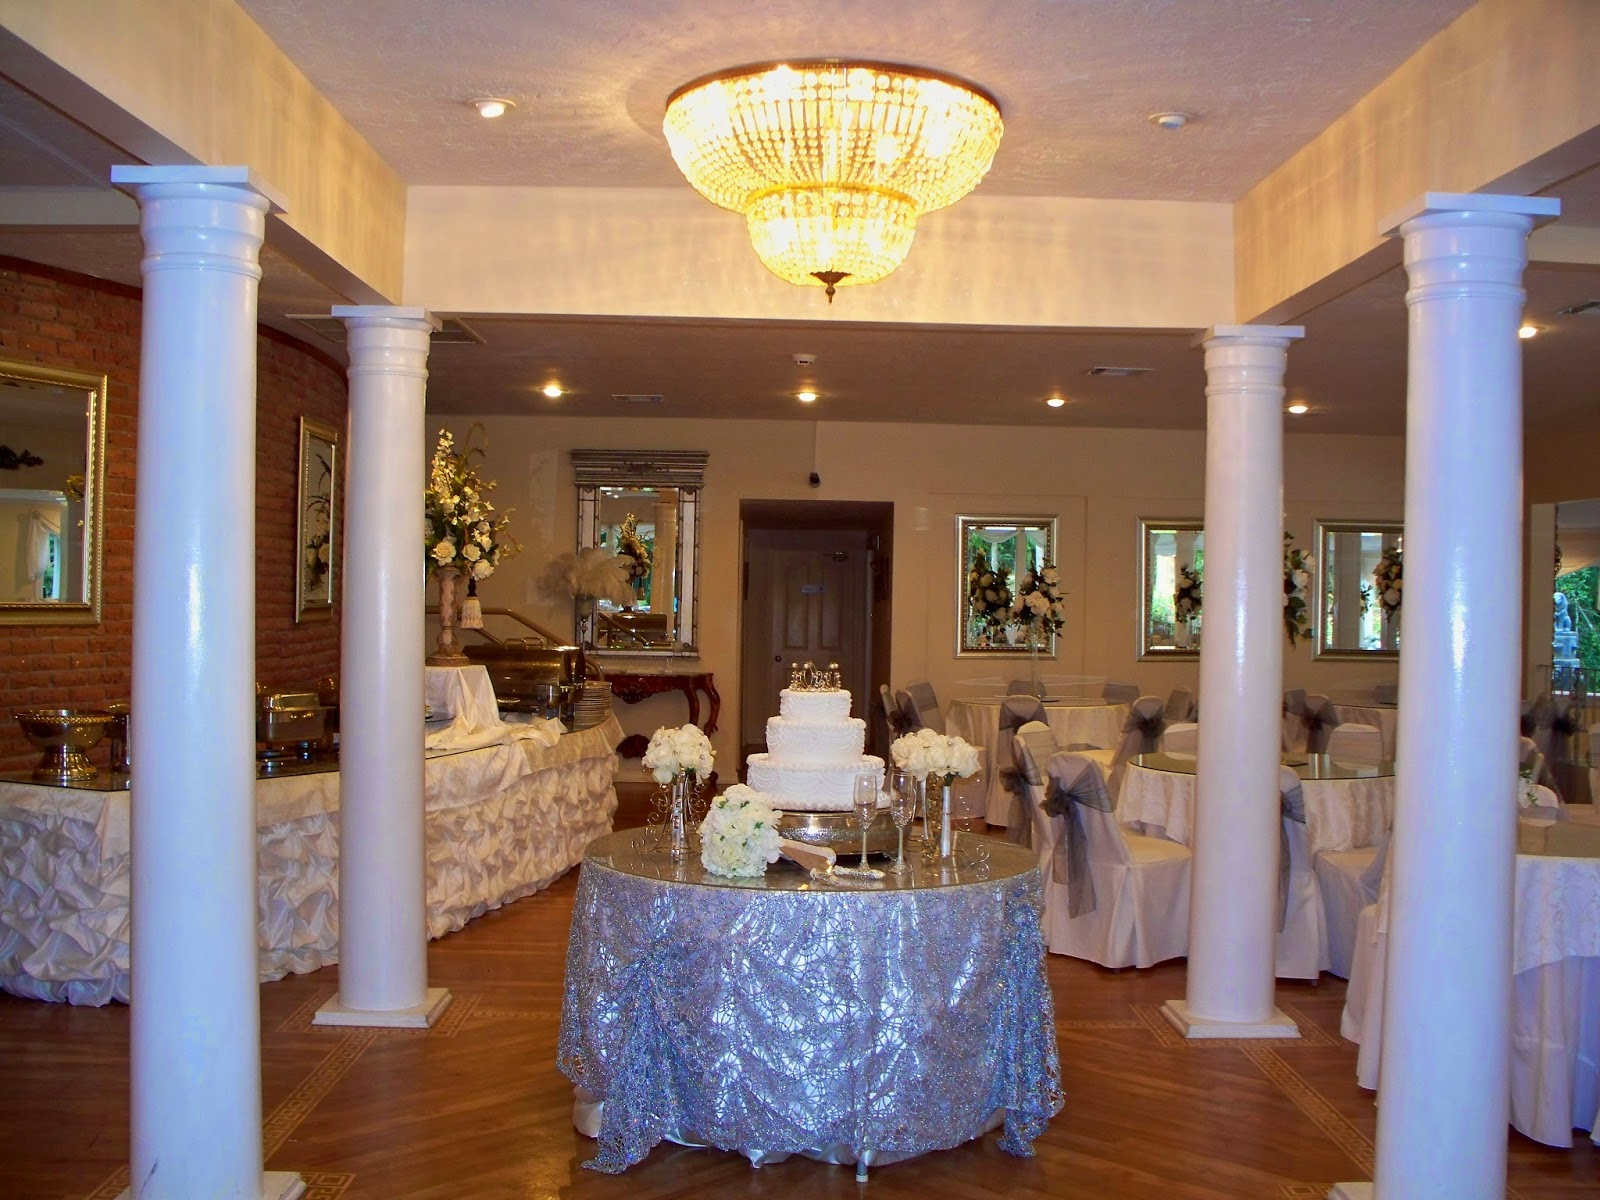 the ballroom has a bridal table guest tables a sound system area a dance floor area food tables a sign in table with a special castle guest book